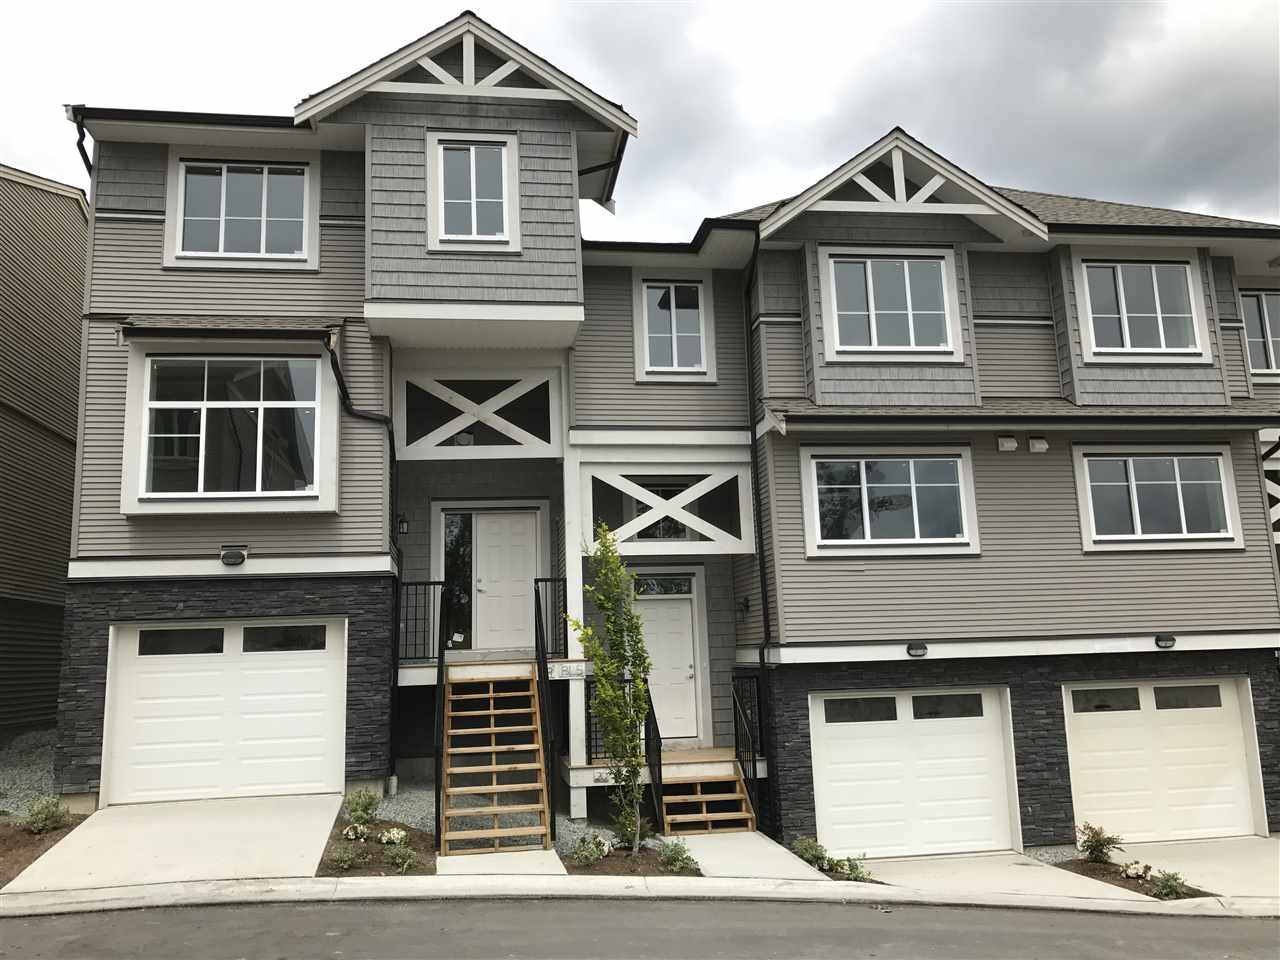 """""""Cottonwood Ridge"""" Deluxe townhomes. Features 3 bedrooms, 3 bathrooms, Maple kitchen with quartz counters, B/I microwave over the range, stainless steel appliances, and washer & dryer, gas fireplace, gas furnace, fire protections,  sprinkler system, double tandem garage & 10 year warranty"""